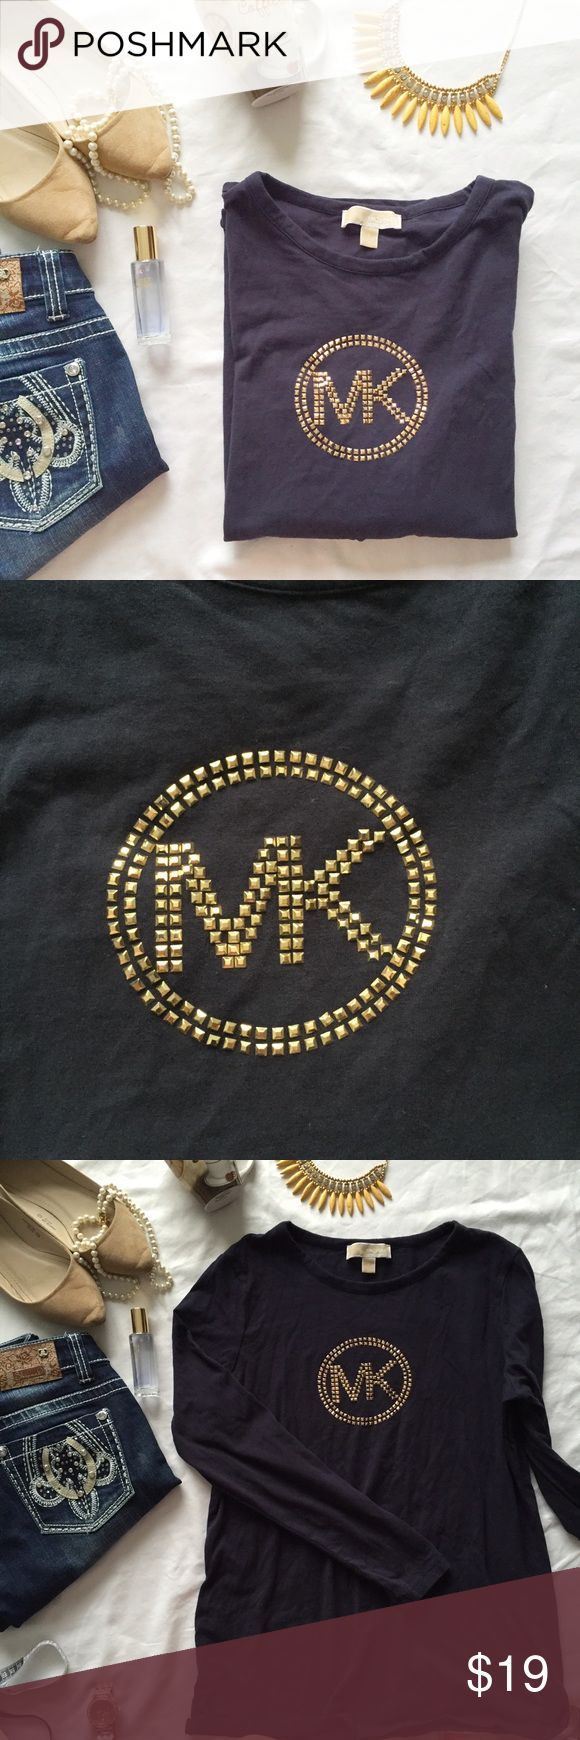 "Michael Kors long sleeve navy/rose gold tee Beautiful basic long sleeve tee with rose gold colored studs (none are missing). I love long sleeve tees in the fall!! Gently used, but in great condition! Measurements (laying flat): bust 20.5"", length 27"", arm 24"" Michael Kors Tops Tees - Long Sleeve"